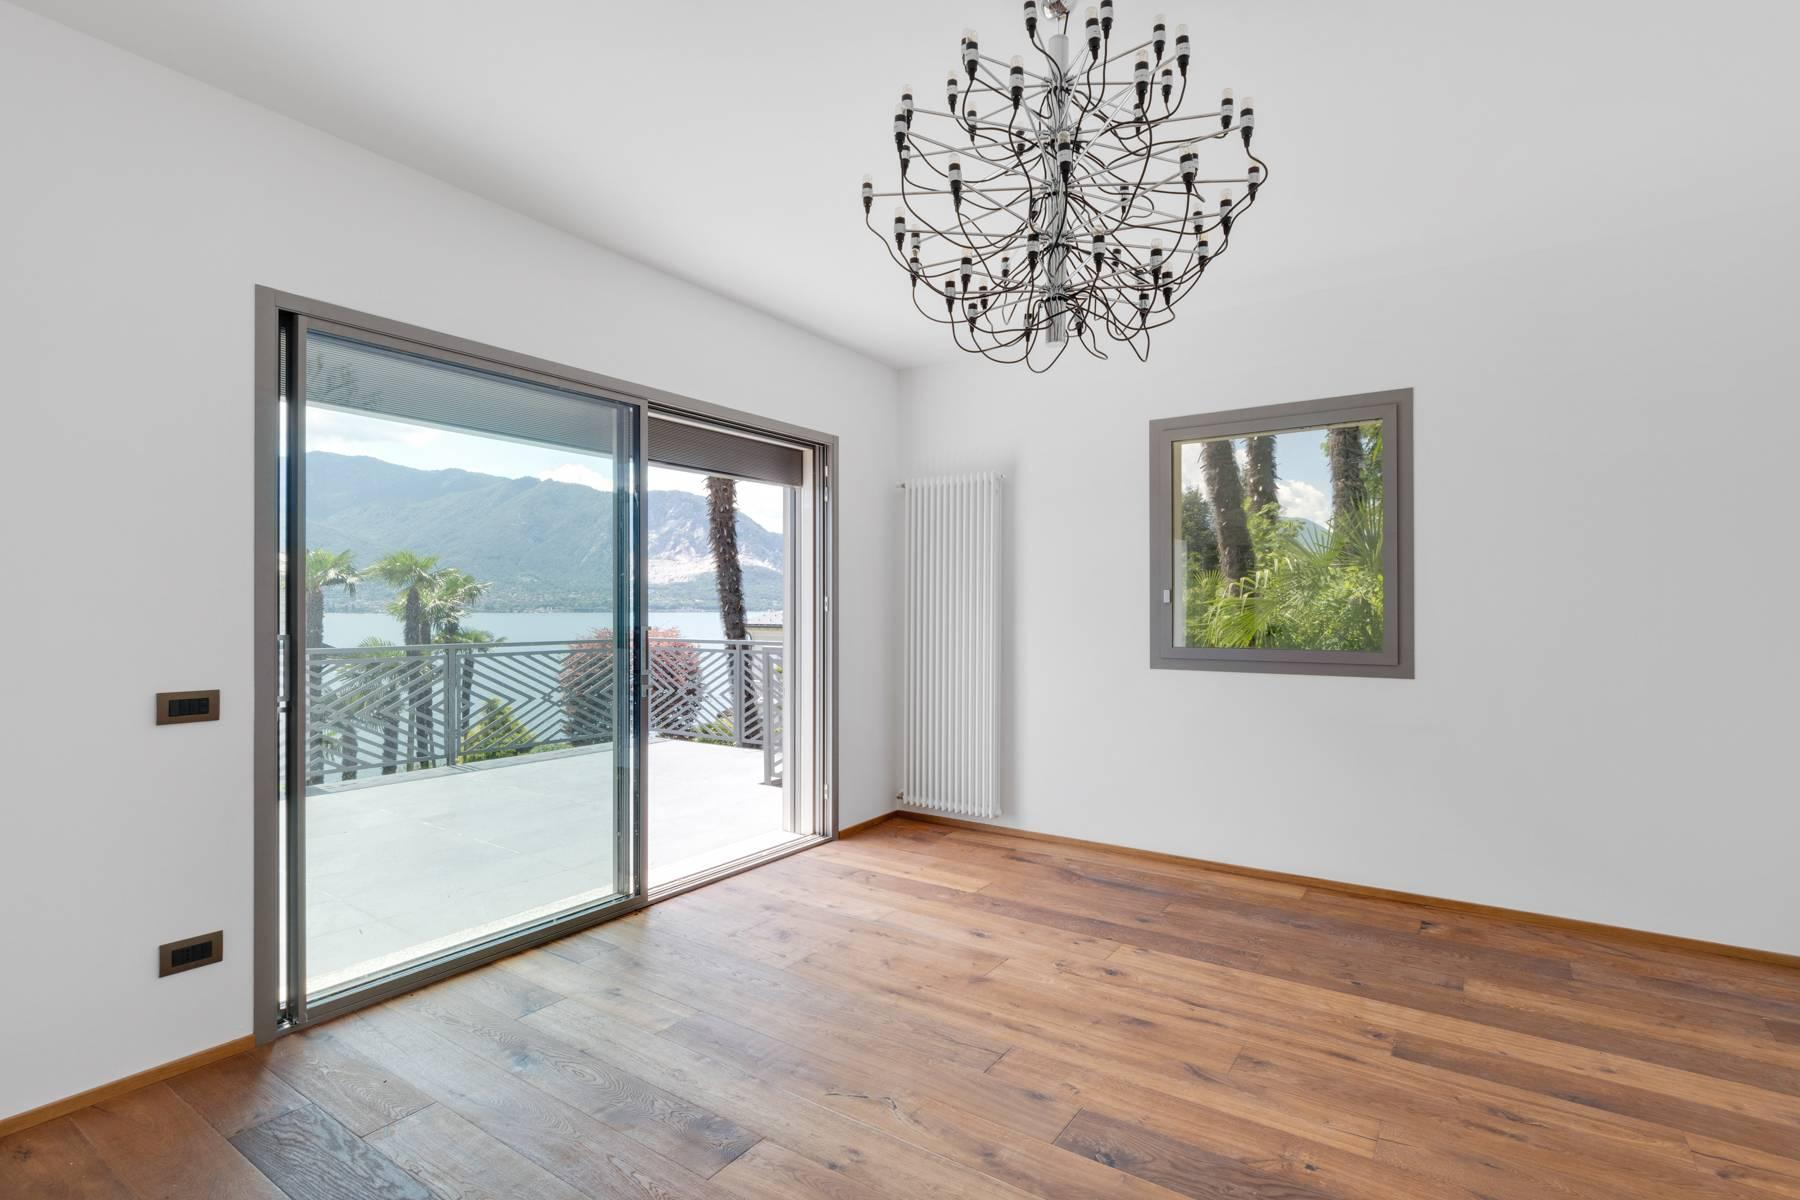 Charming newly built villa facing the lake in one of the most prestigious areas of Pallanza - 1